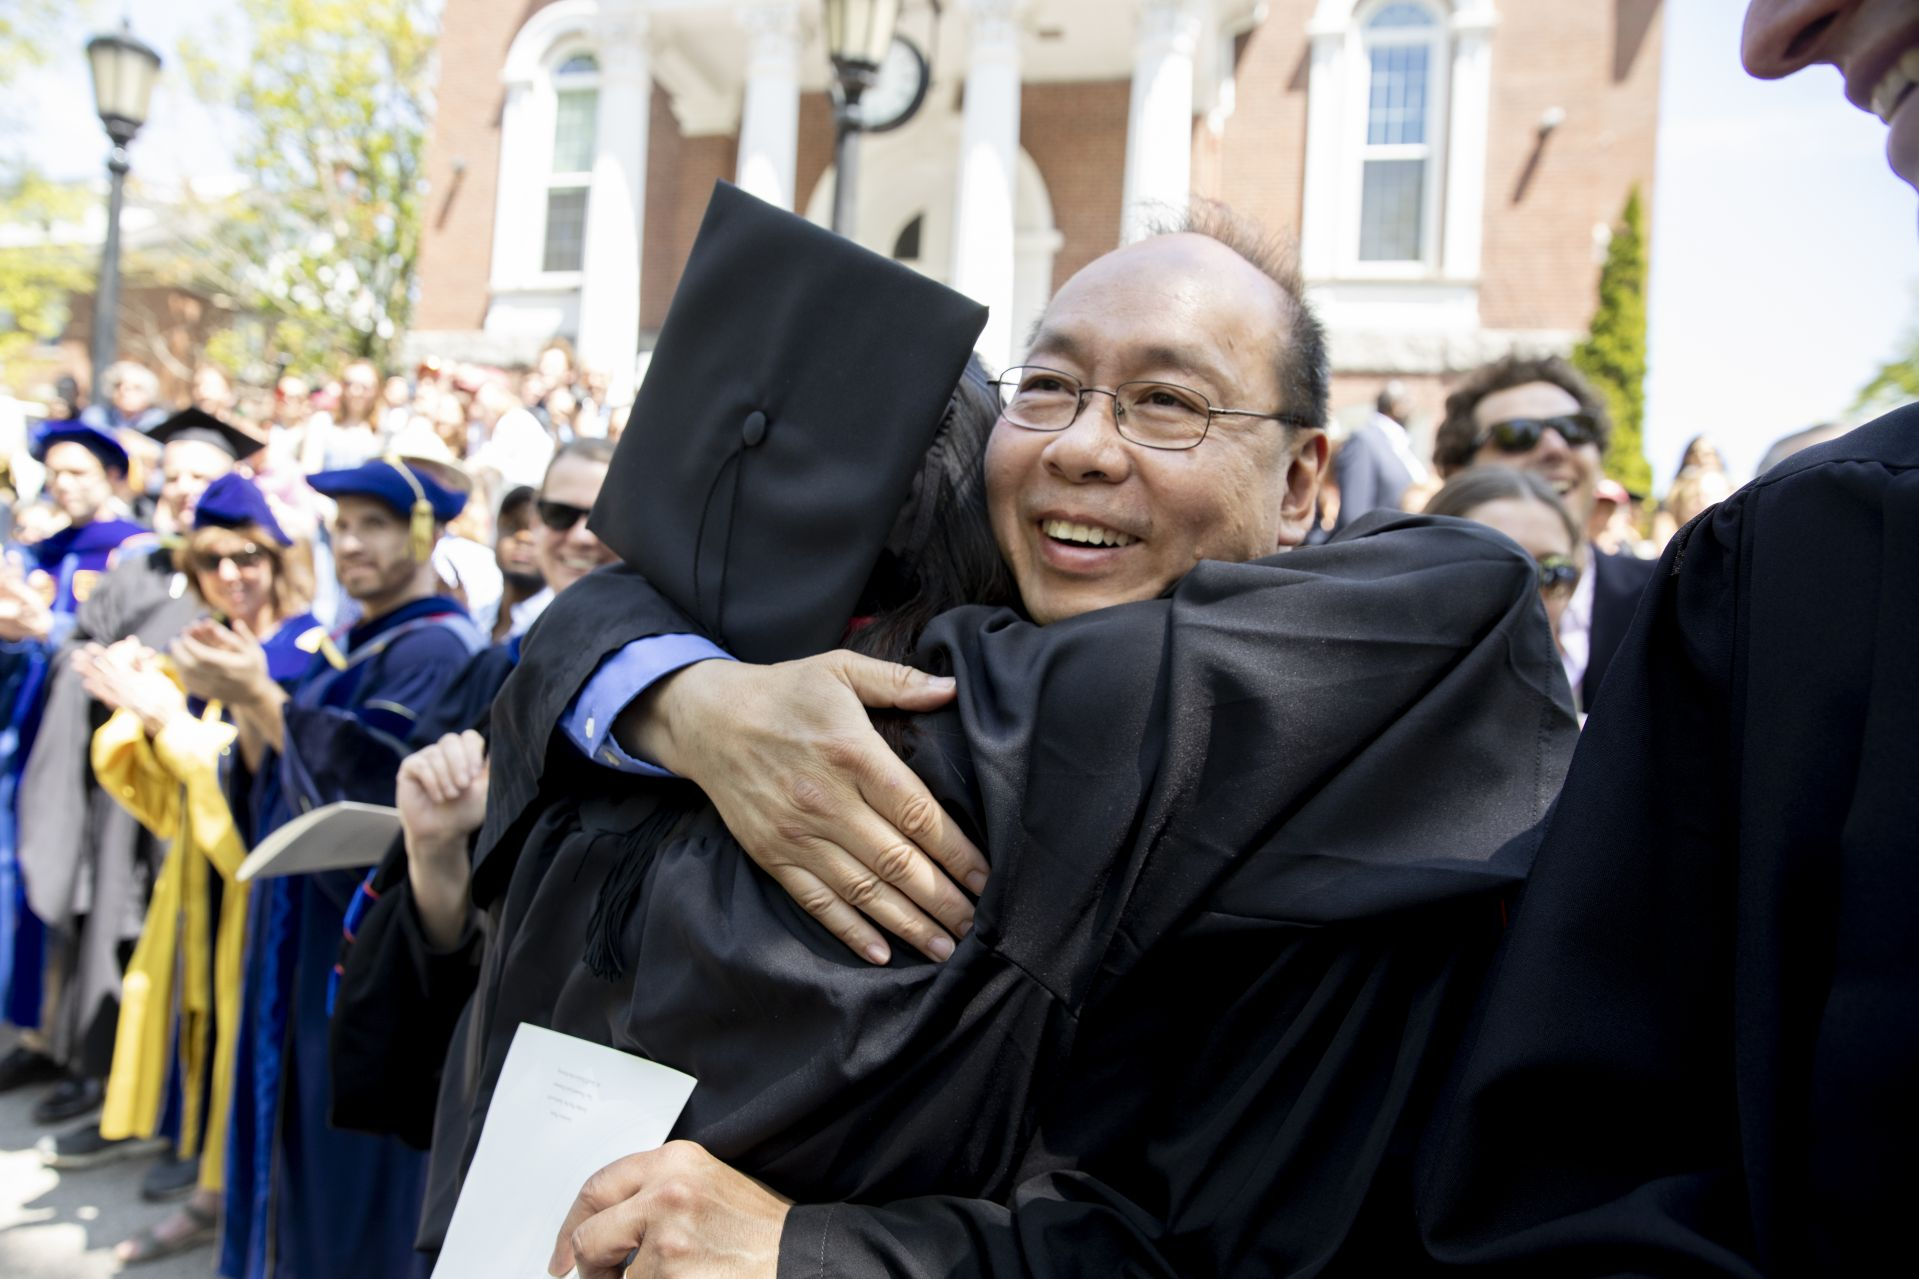 Math professor Peter Wong hugs a new graduate during the recessional. (Phyllis Graber Jensen/Bates College)